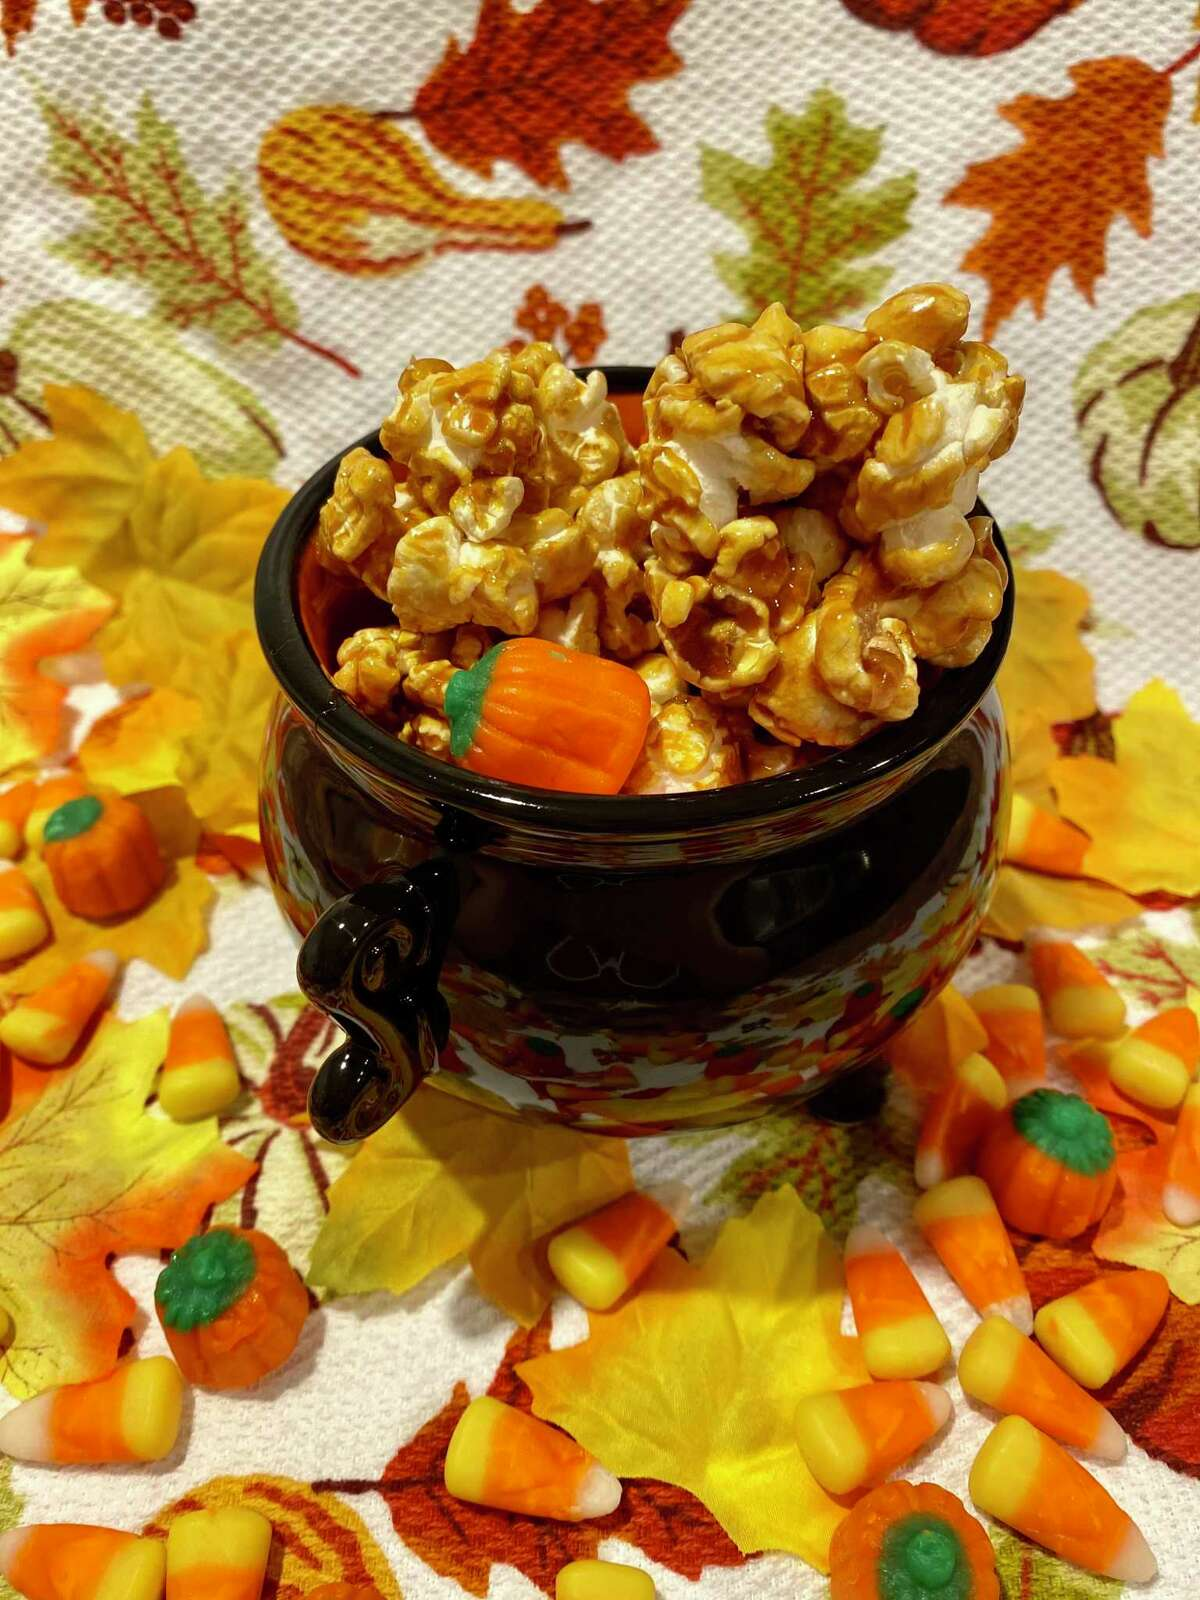 Caramel popcorn balls add a sweetness to October.